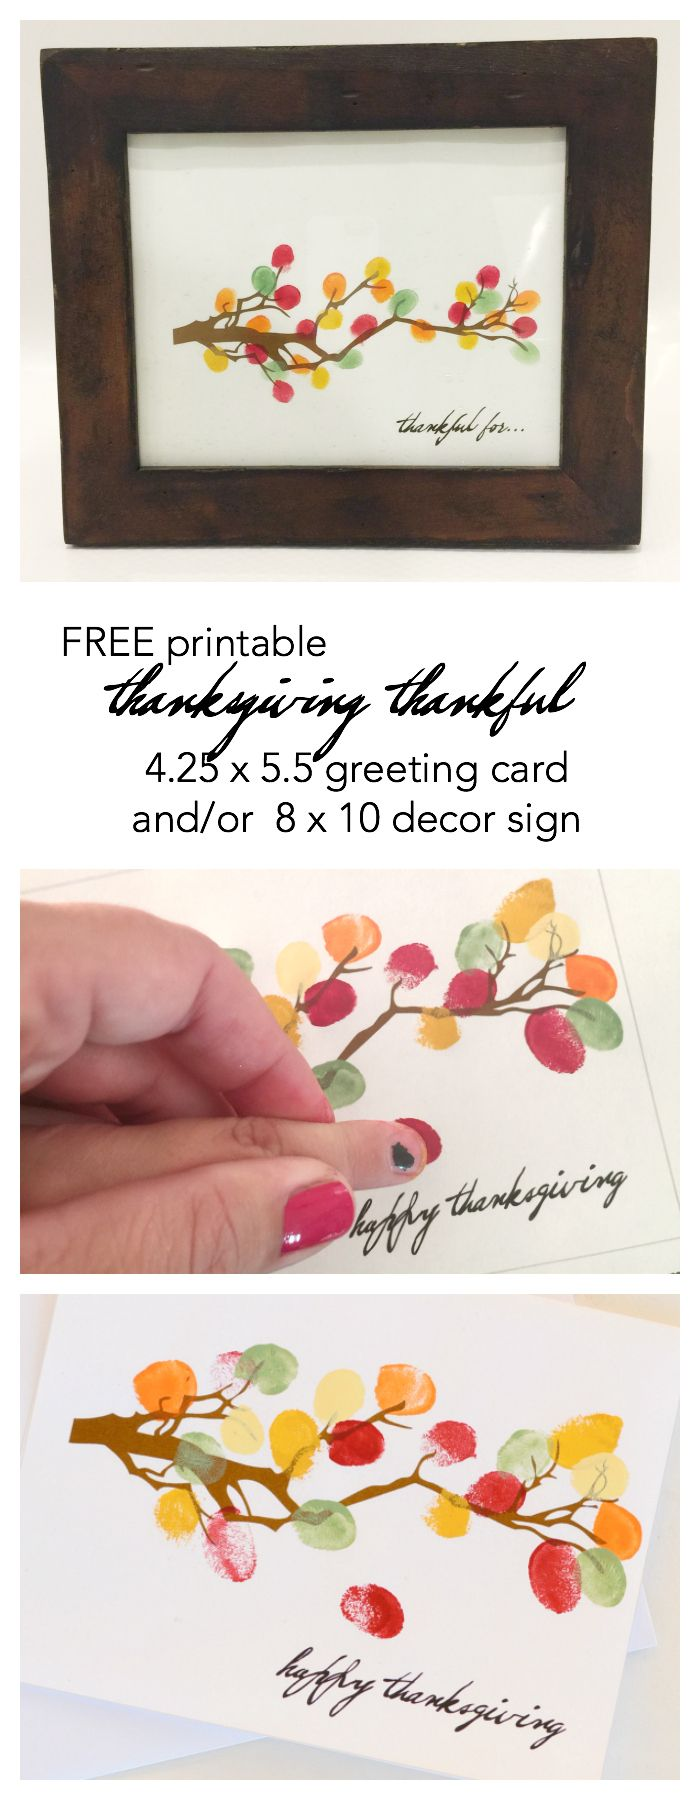 DIY Thanksgiving Decor and/or Card #thanksgivingdecorations